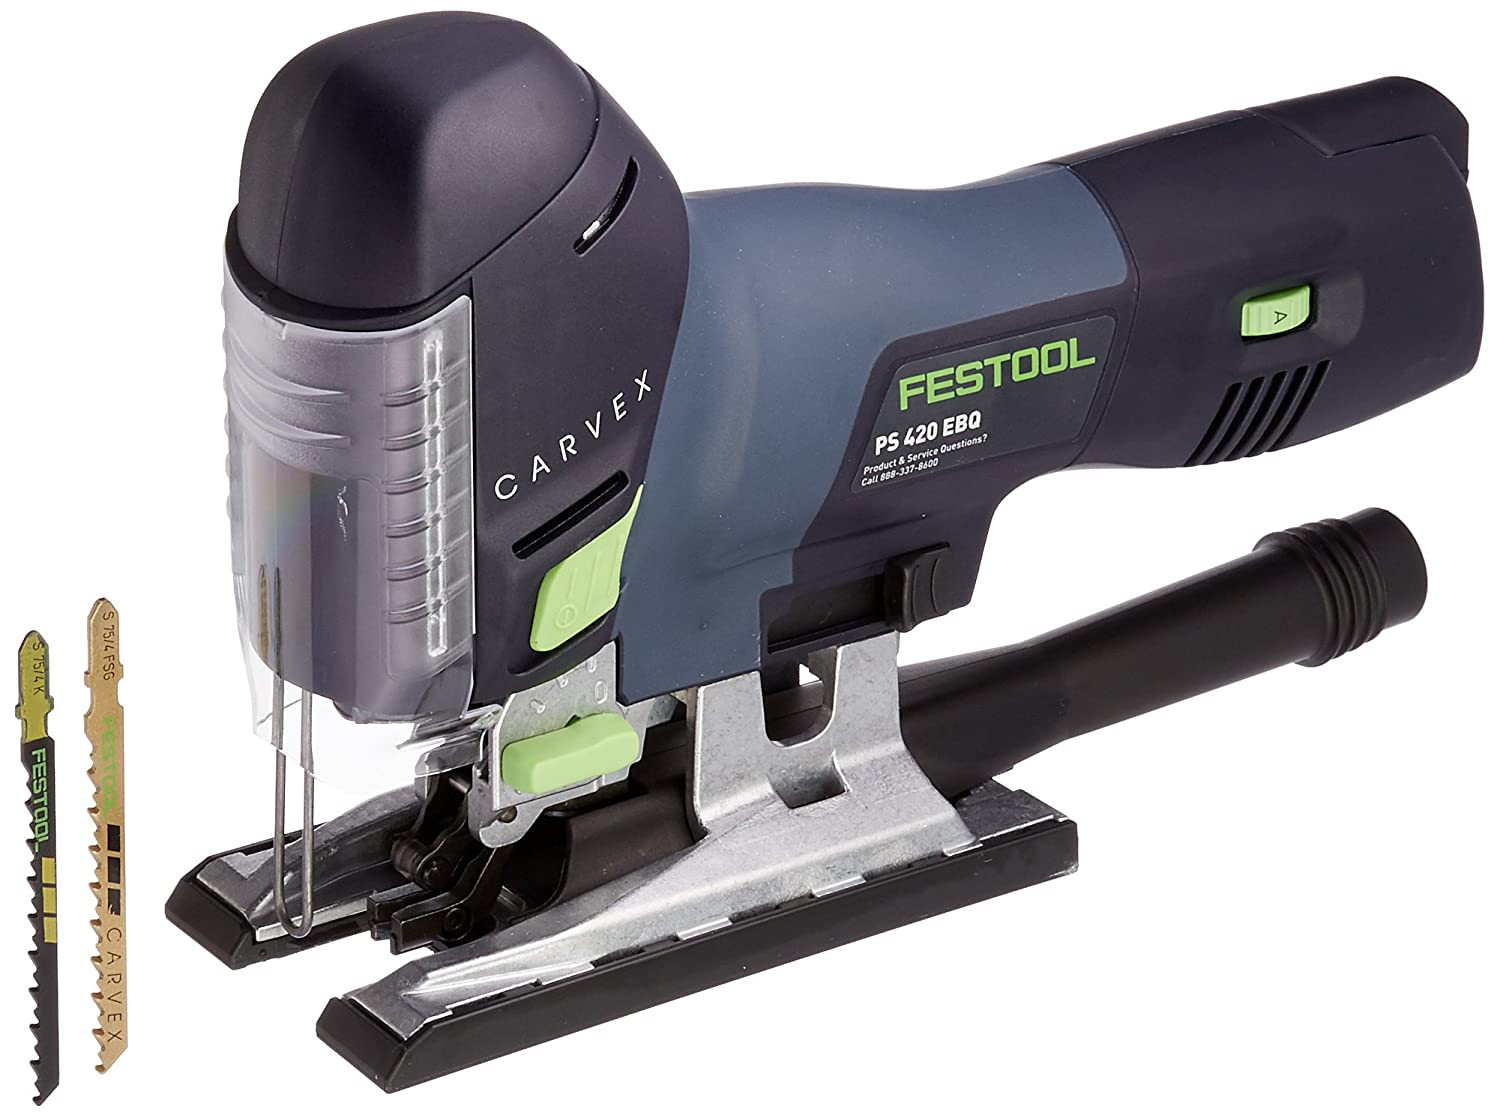 Festool 561593 Carvex PS 420 EBQ Jigsaw by Festool B00DRF284Q